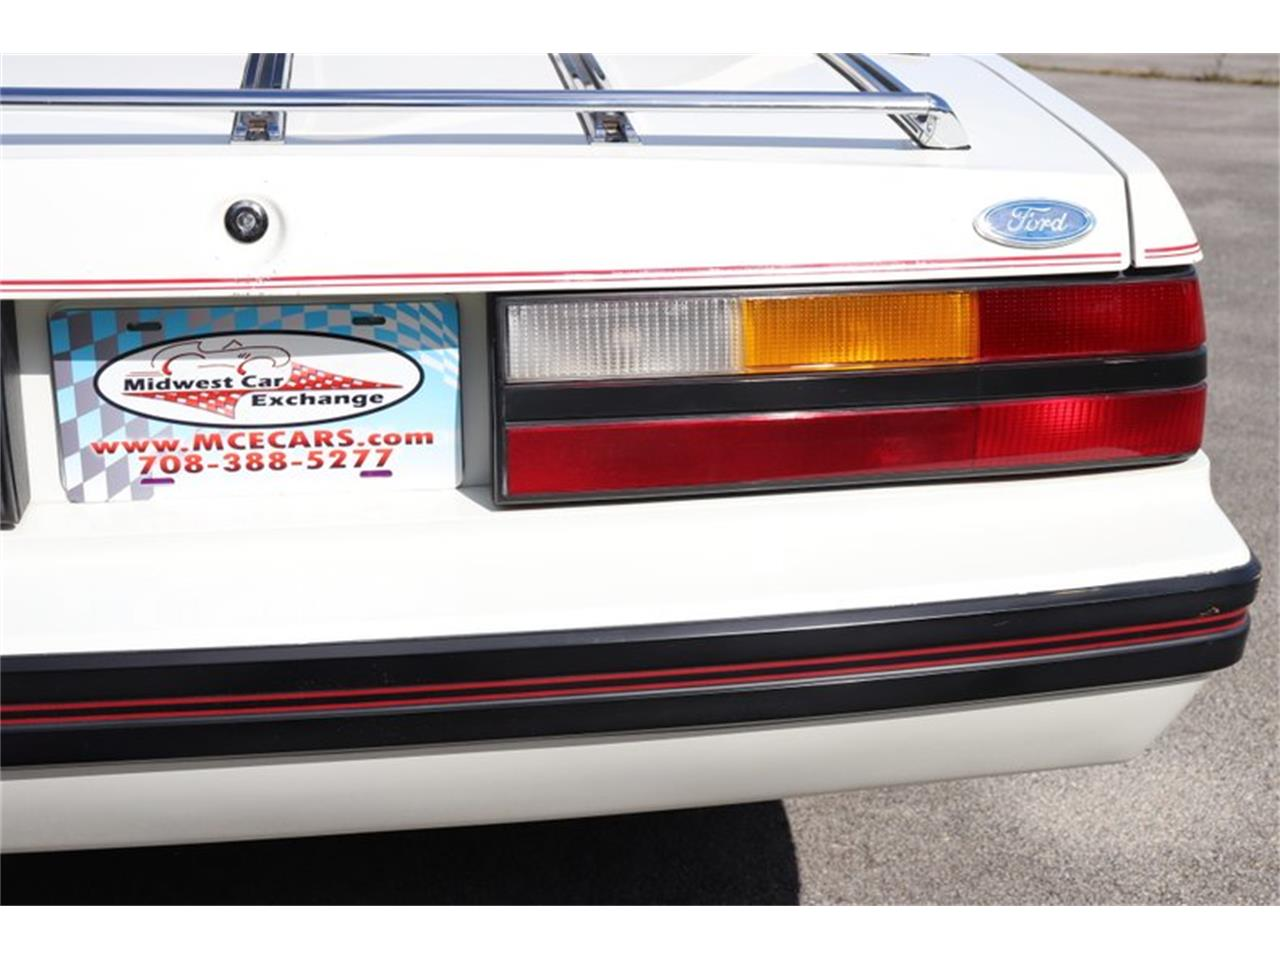 Large Picture of 1983 Ford Mustang - $7,900.00 Offered by Midwest Car Exchange - OHLI